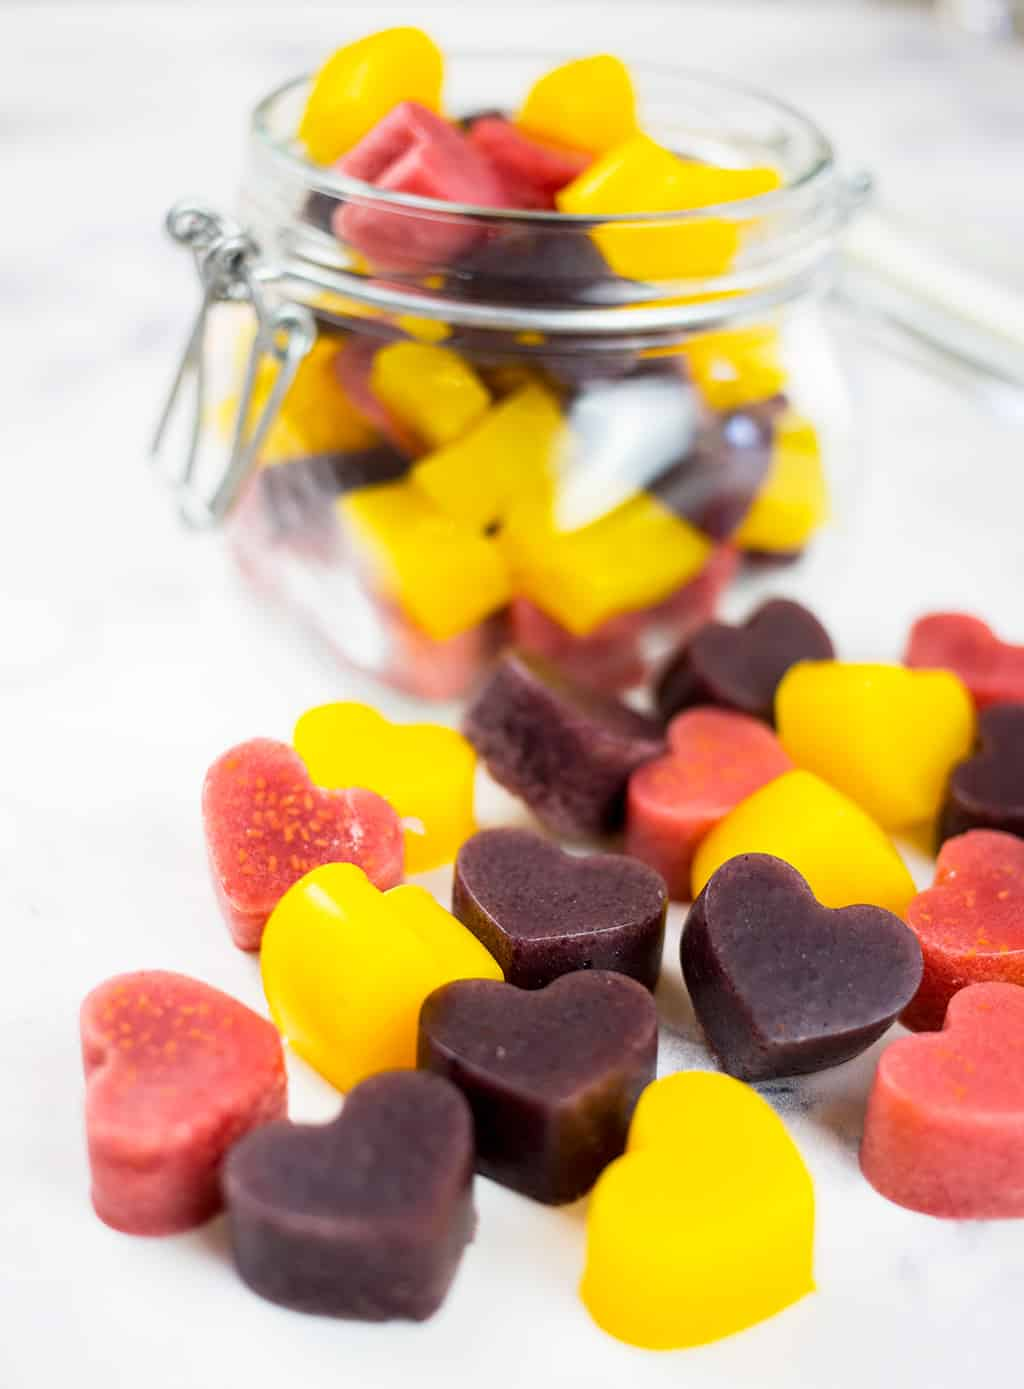 Mango gummies, raspberry gummies and blueberry gummies spilling out of glas jar on white background.